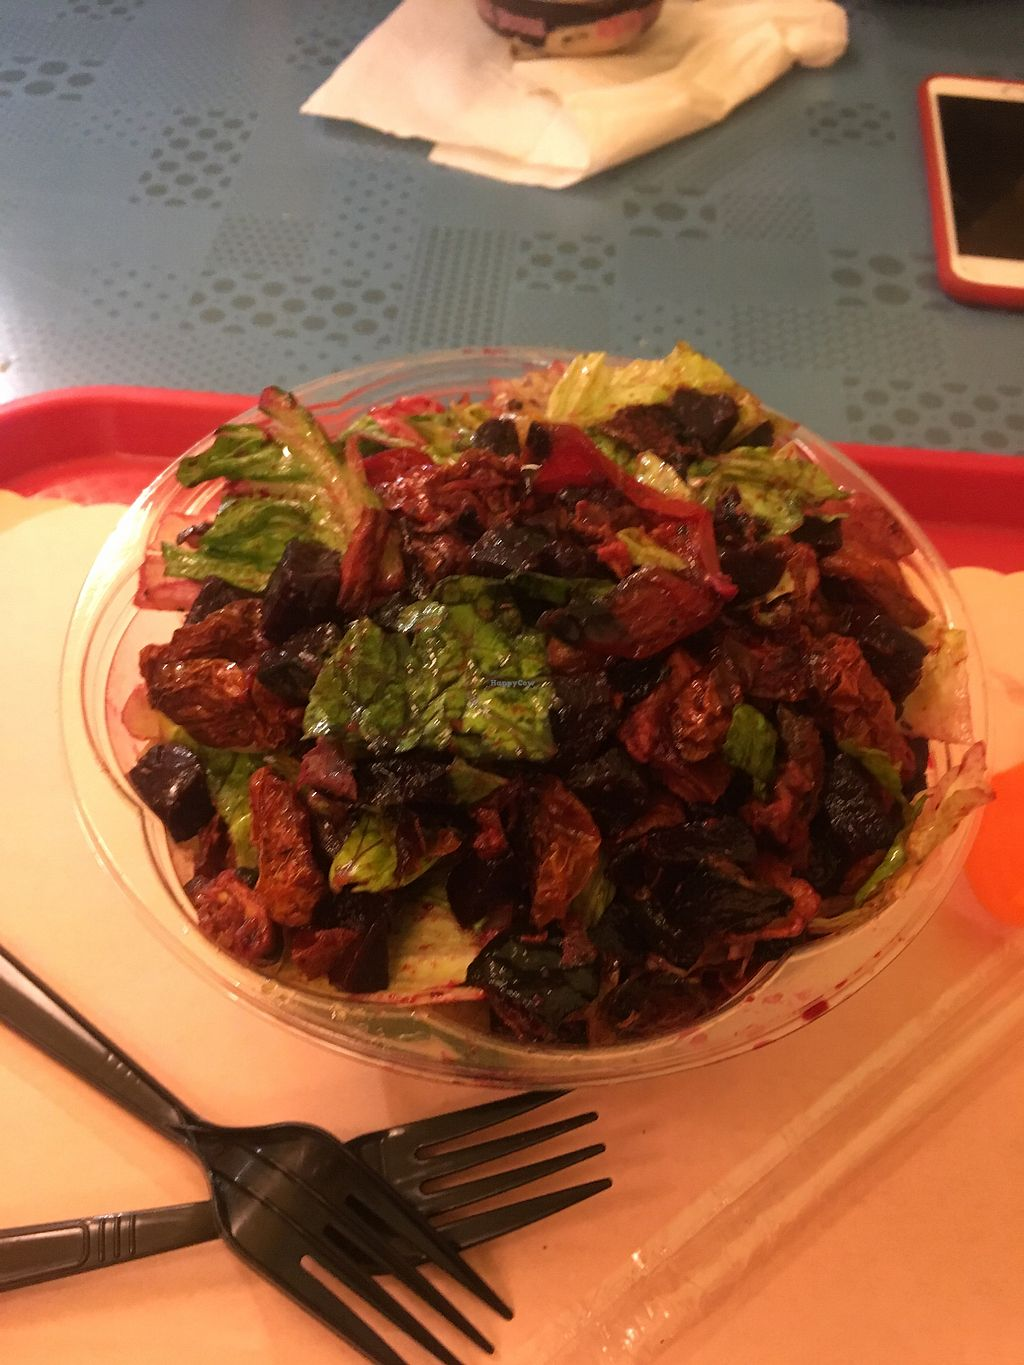 """Photo of Ice Cream House - Bedford Ave  by <a href=""""/members/profile/770veg"""">770veg</a> <br/>Salad bar attack <br/> March 30, 2018  - <a href='/contact/abuse/image/34790/378062'>Report</a>"""